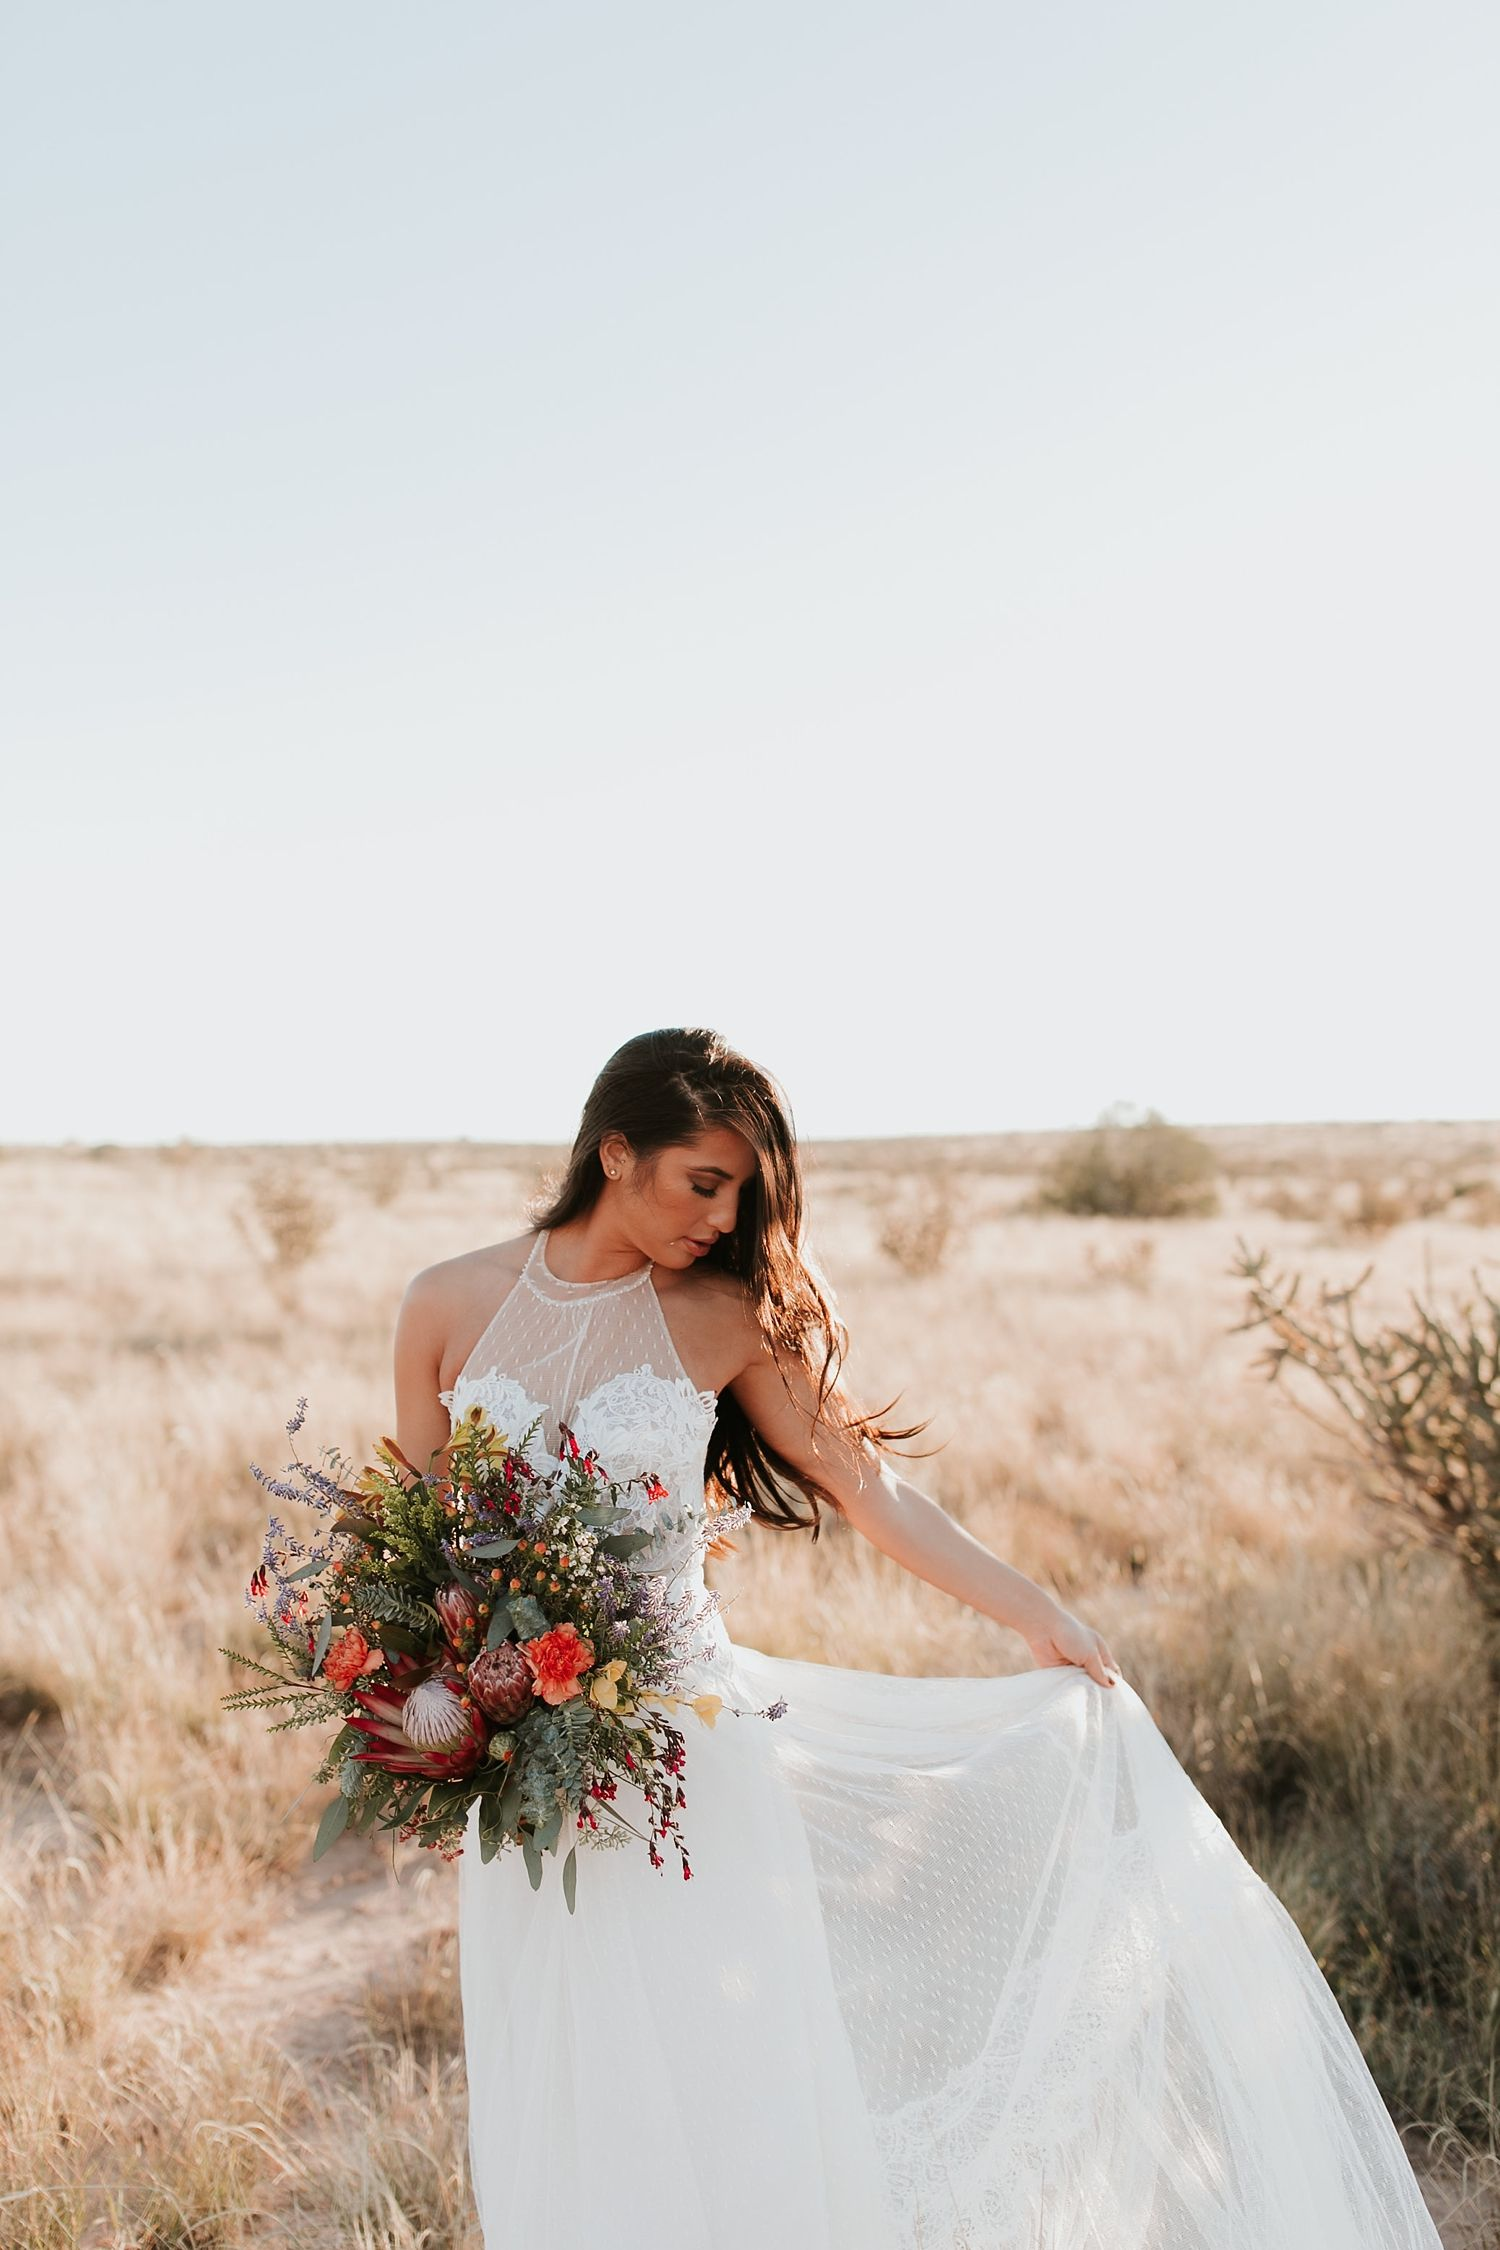 Sachi - A Desert Bridal Session | Pinterest